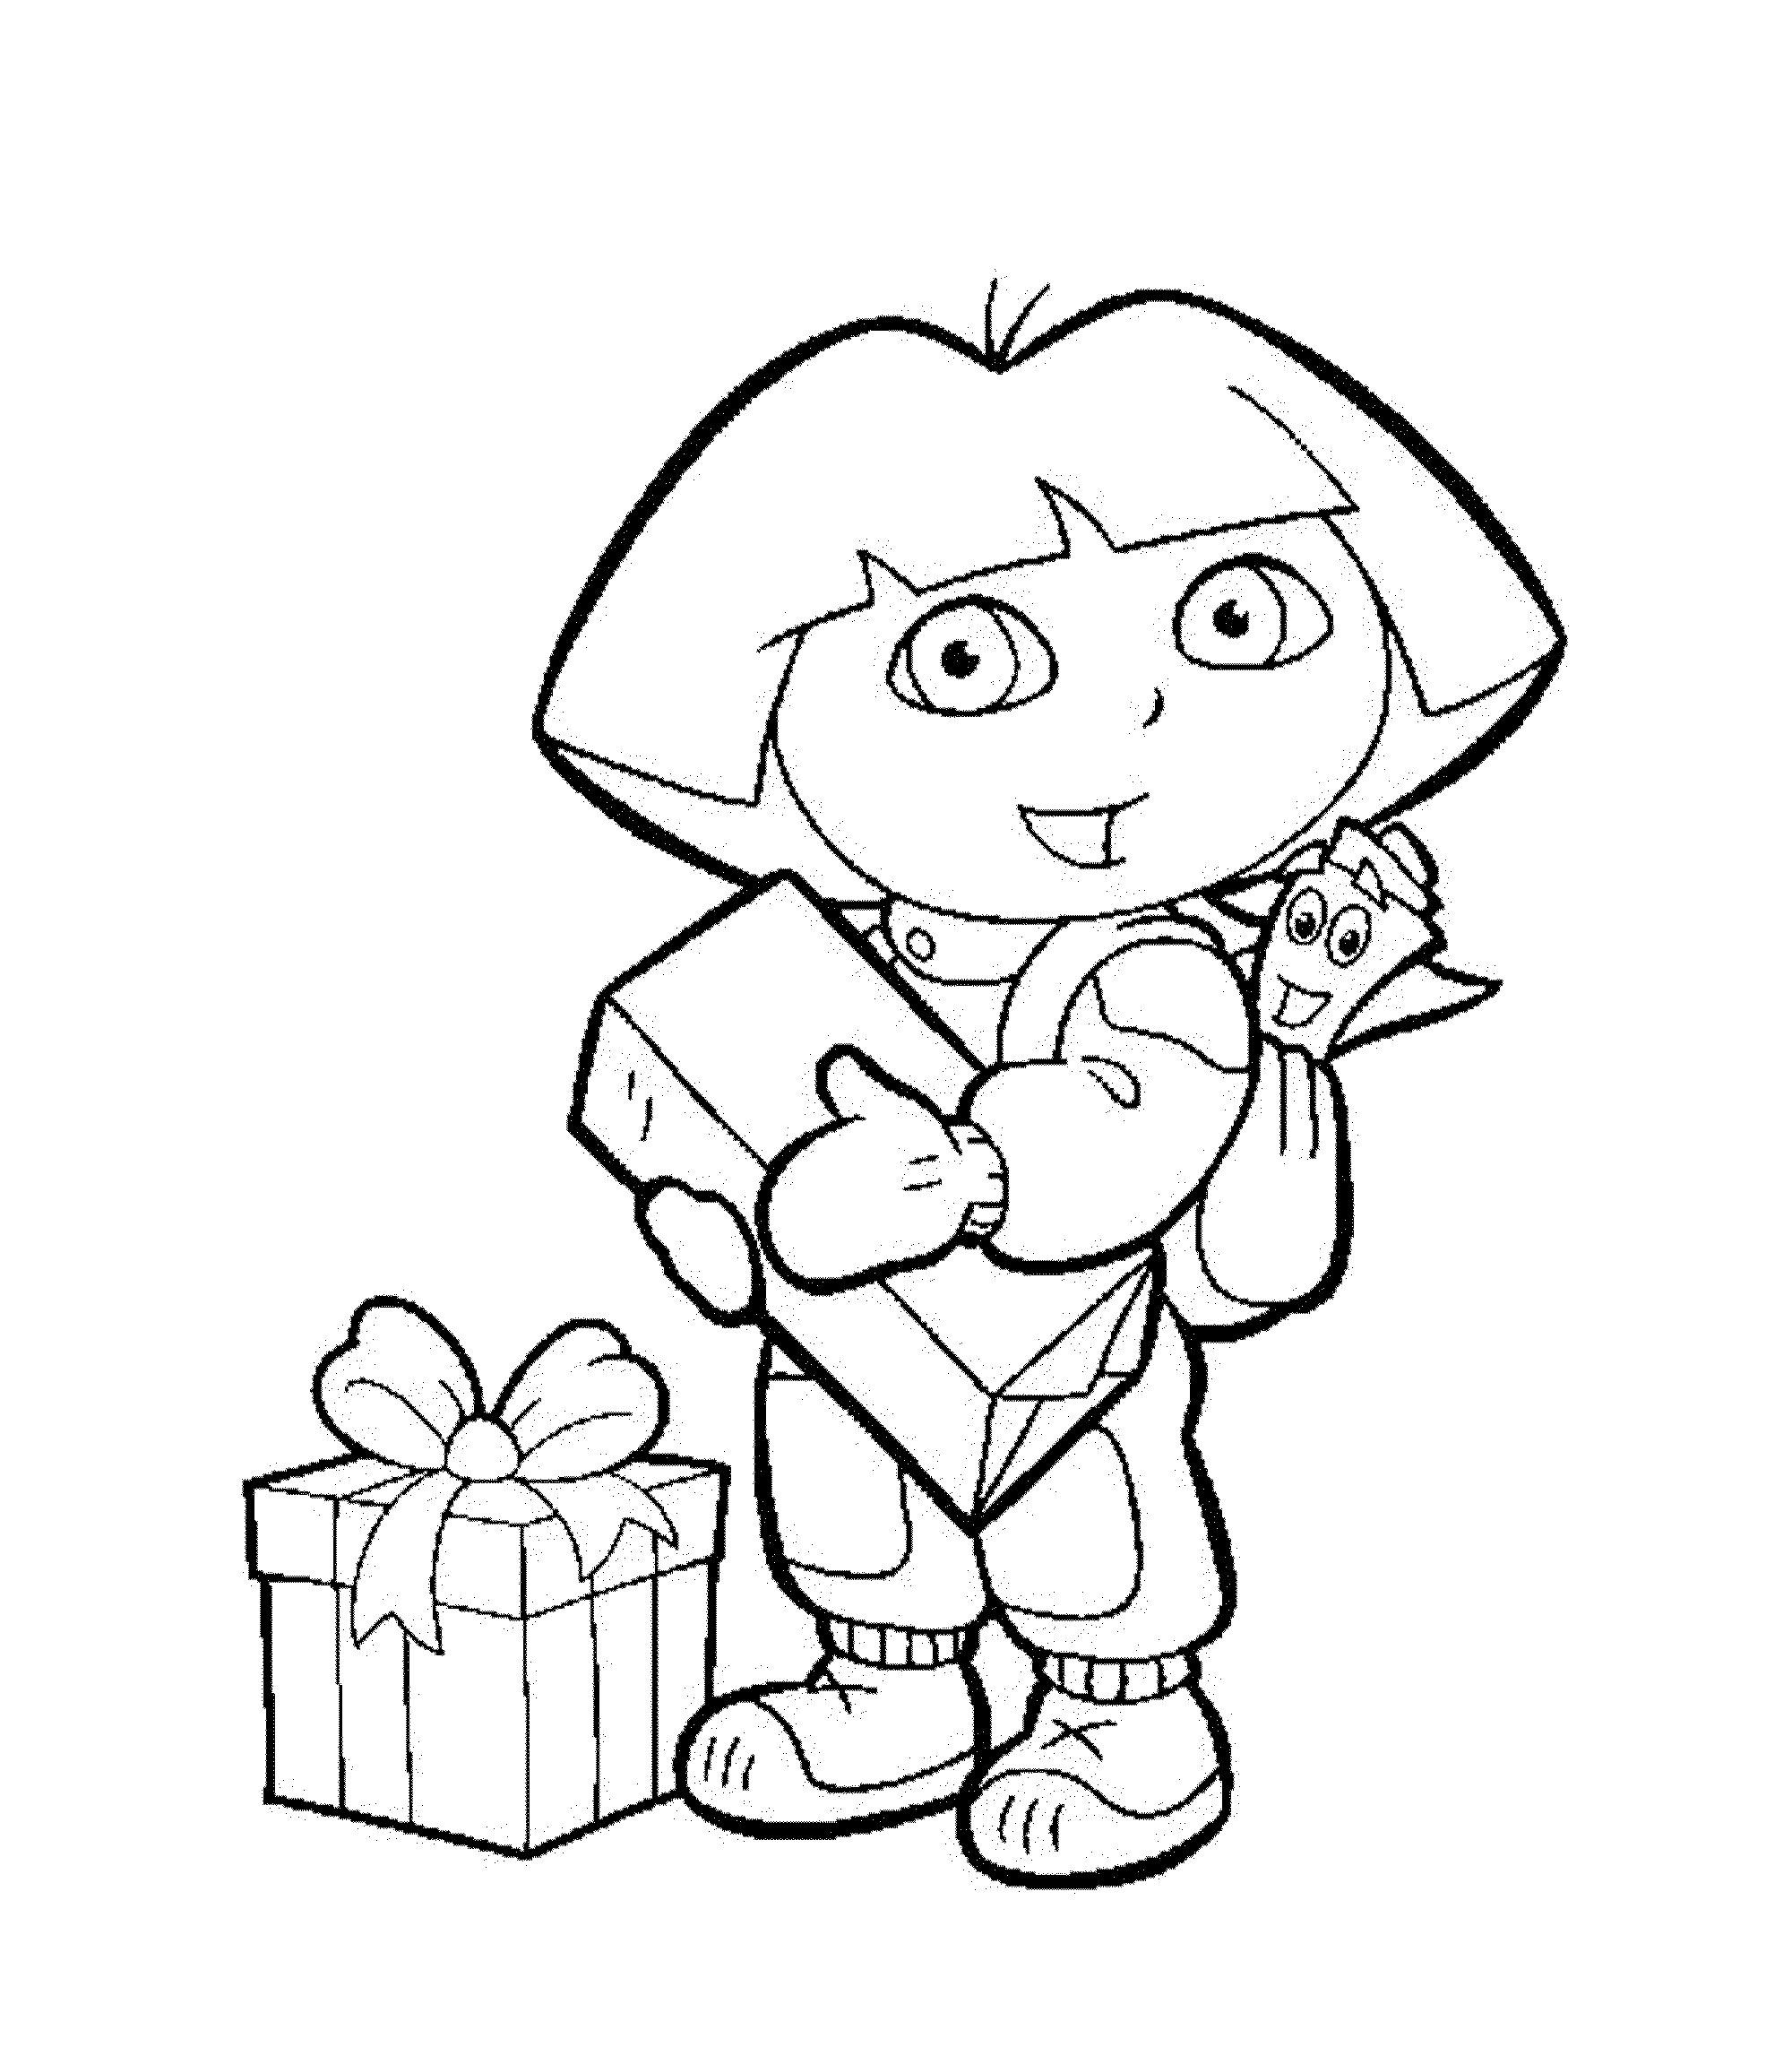 free printable dora coloring pages dora and boots coloring pages to download and print for free dora coloring pages printable free